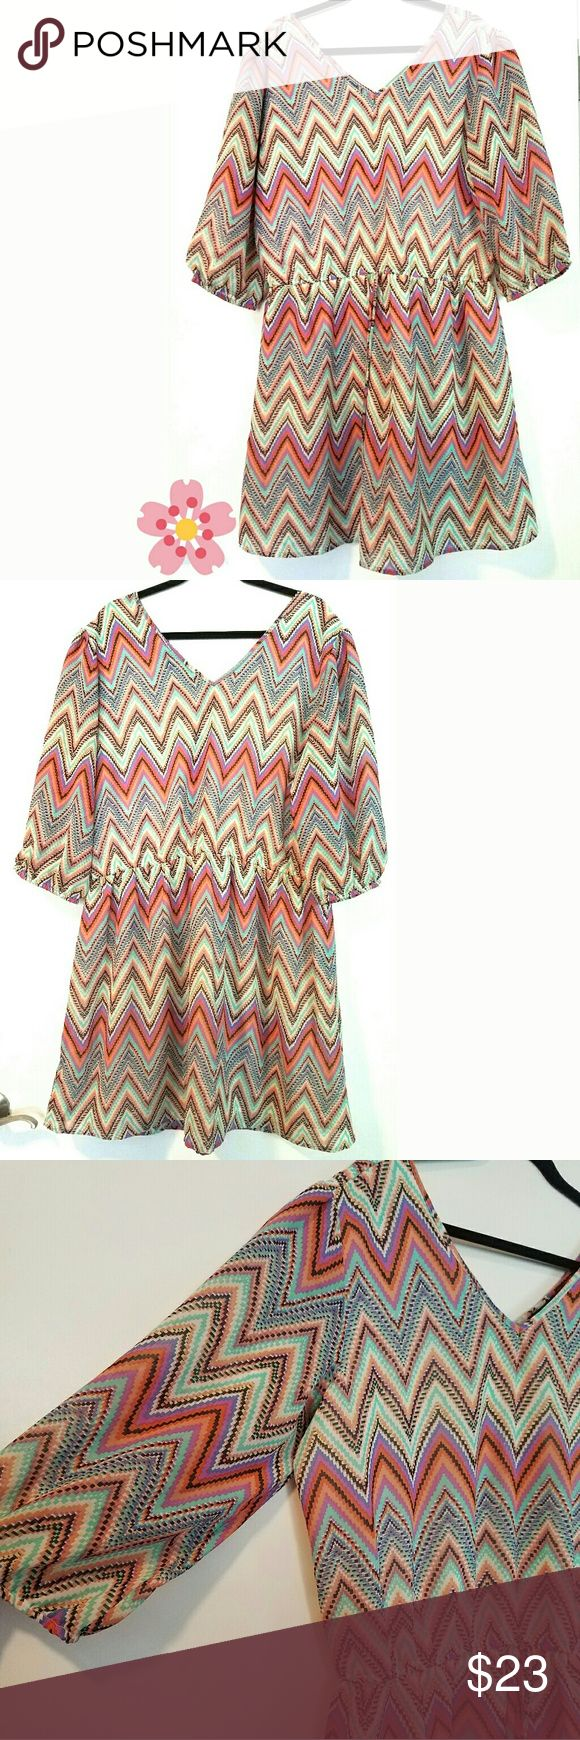 """Speed Control 2X Chevron Print Dress This Speed Control 2X Chevron Print Dress is in great used condition. Lined. 100% polyester. No stretch. Bust measures 24"""" across laying flat, measured from pit to pit, so 48"""" around. 39.5"""" long. ::: Bundle and save! ::: No trades. Speed Control Dresses"""